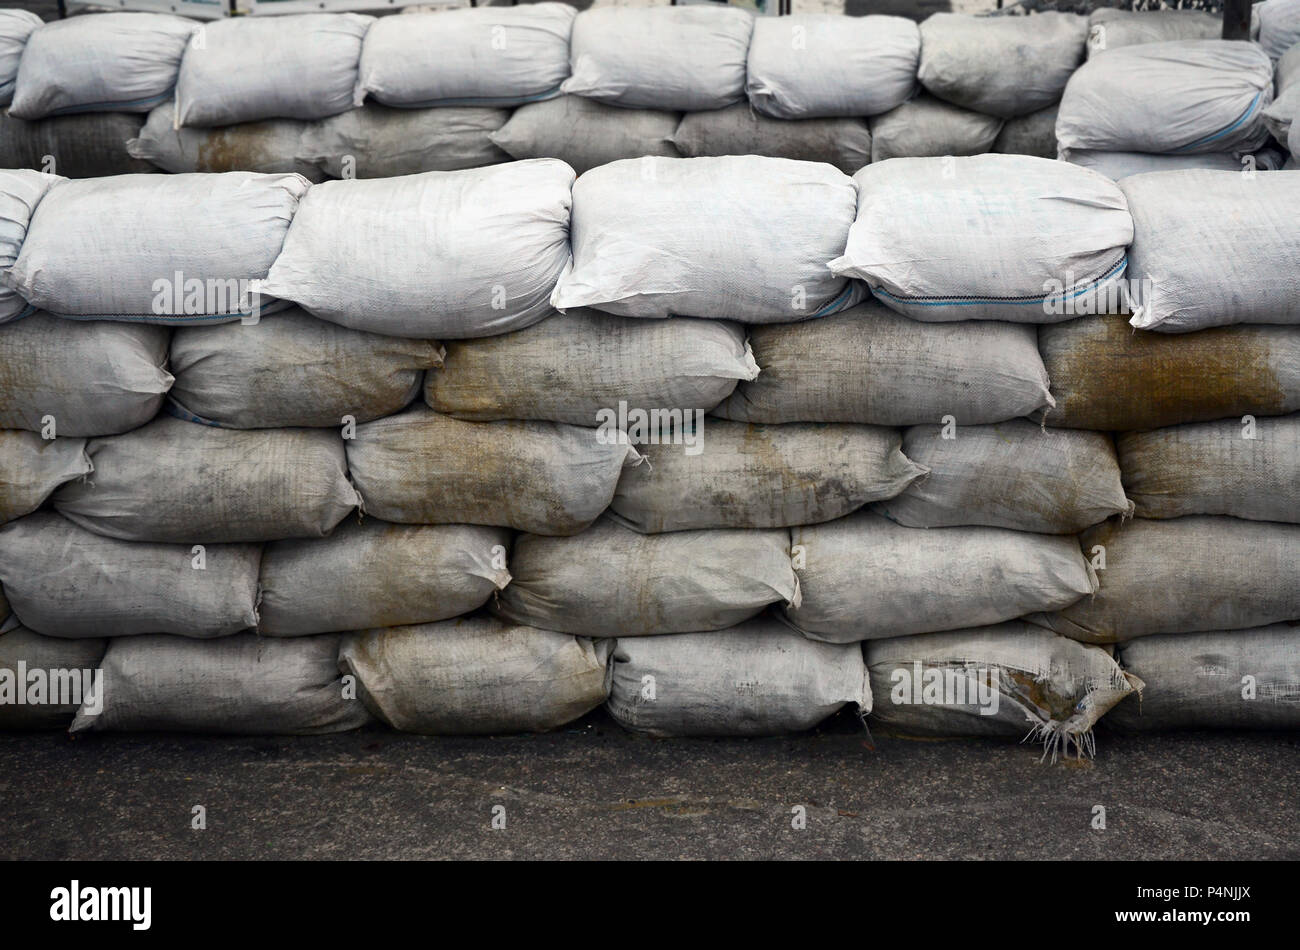 Background of many dirty sand bags for flood defense. Protective sandbag barricade for military use. Handsome tactical bunker . Stock Photo